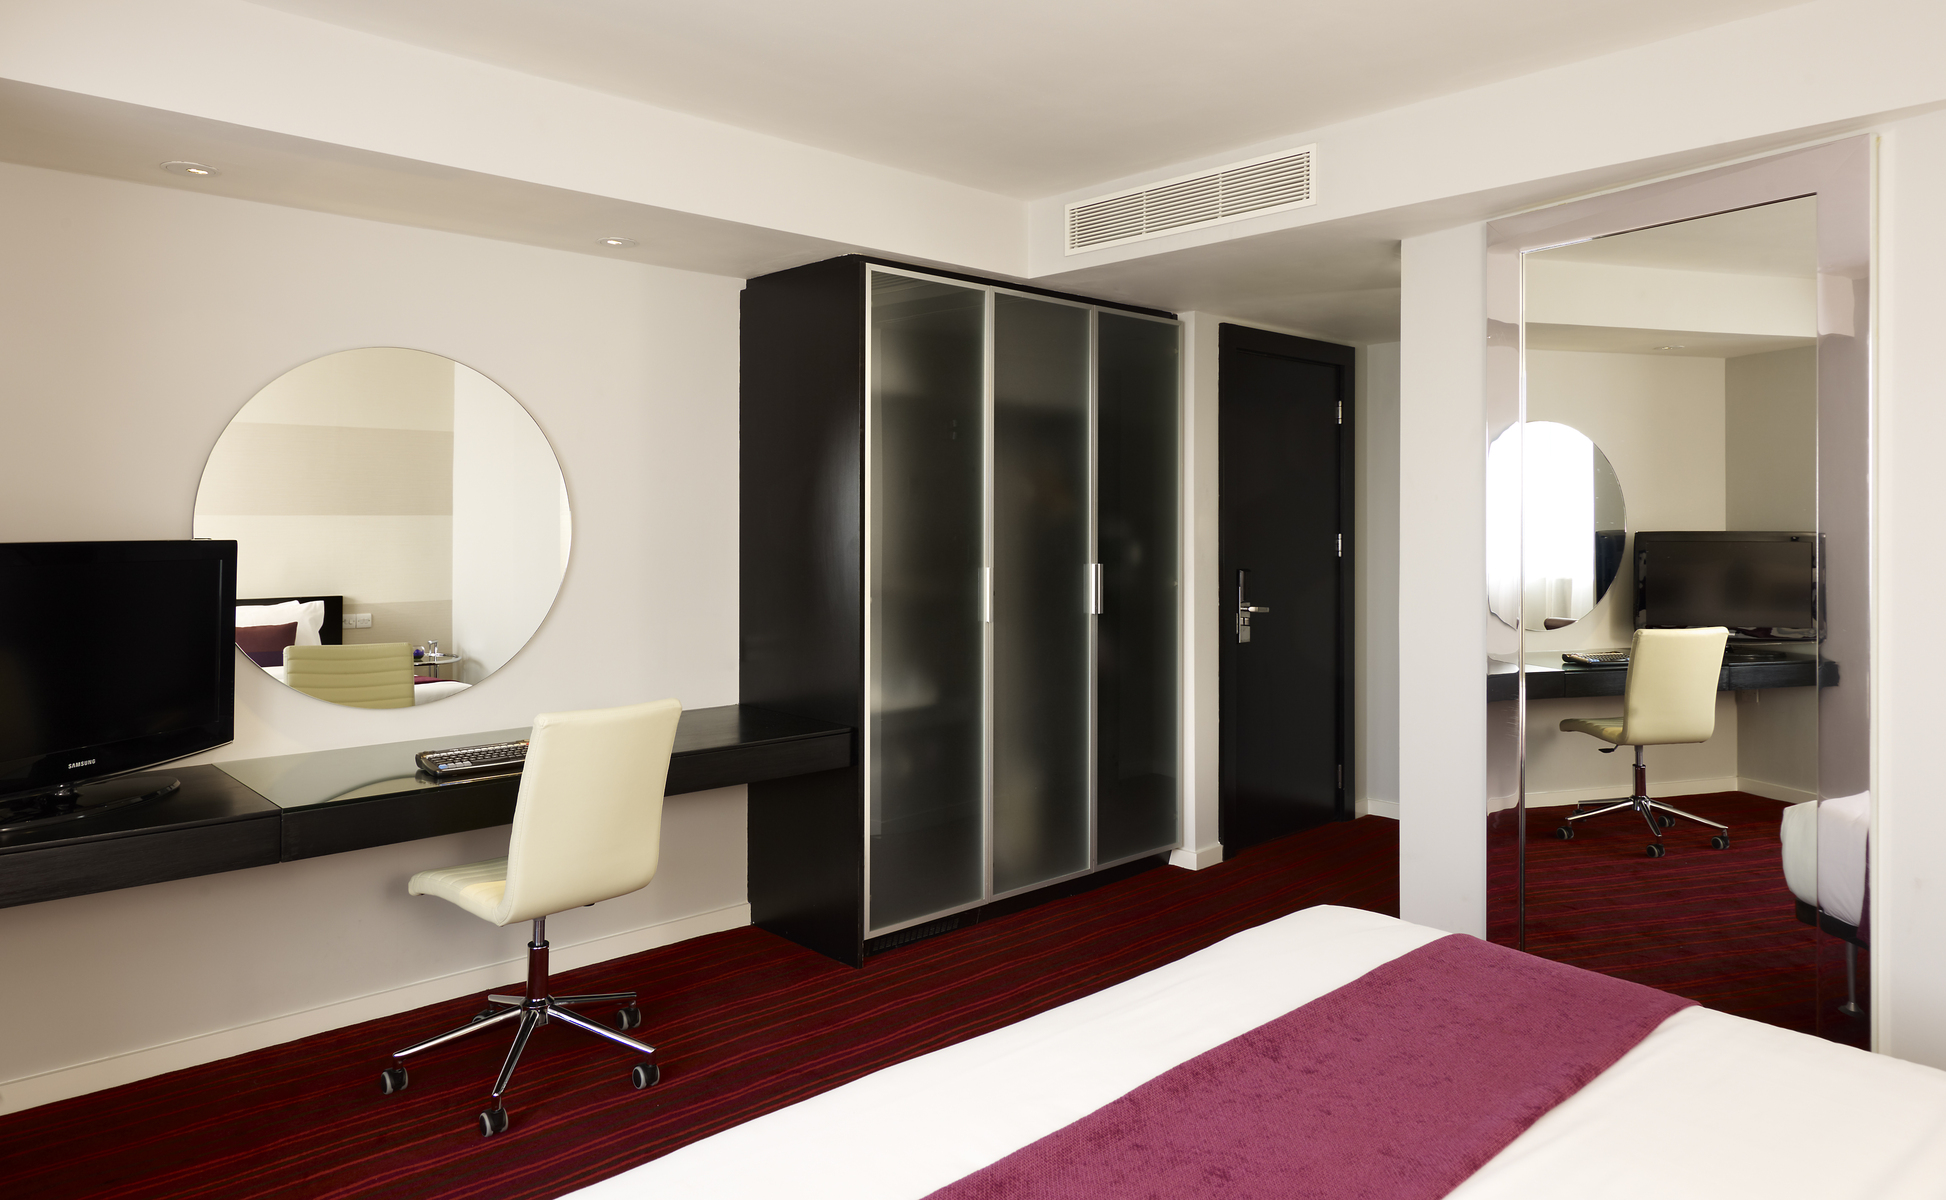 Leeds hotel room with work desk and circular mirror